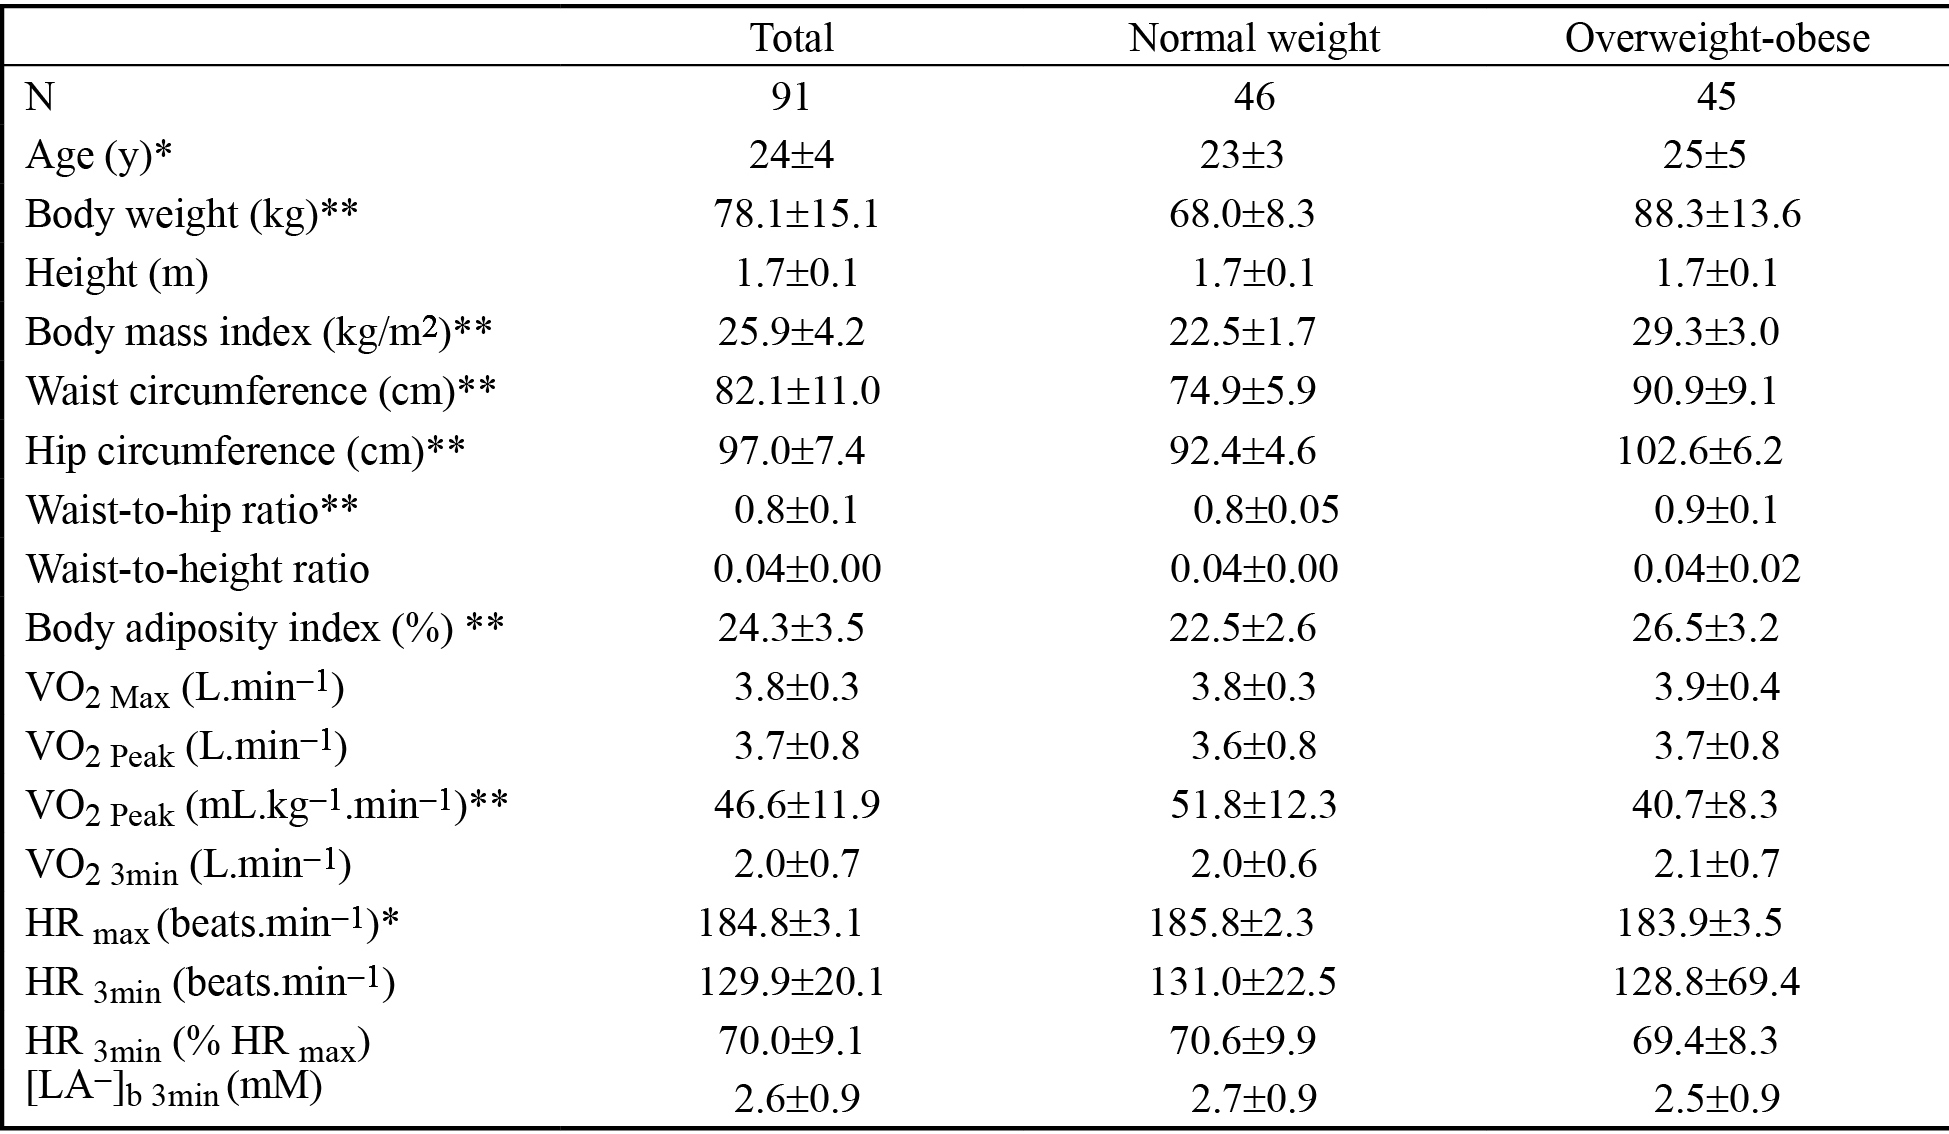 Anthropometric and physiological characteristics of participants